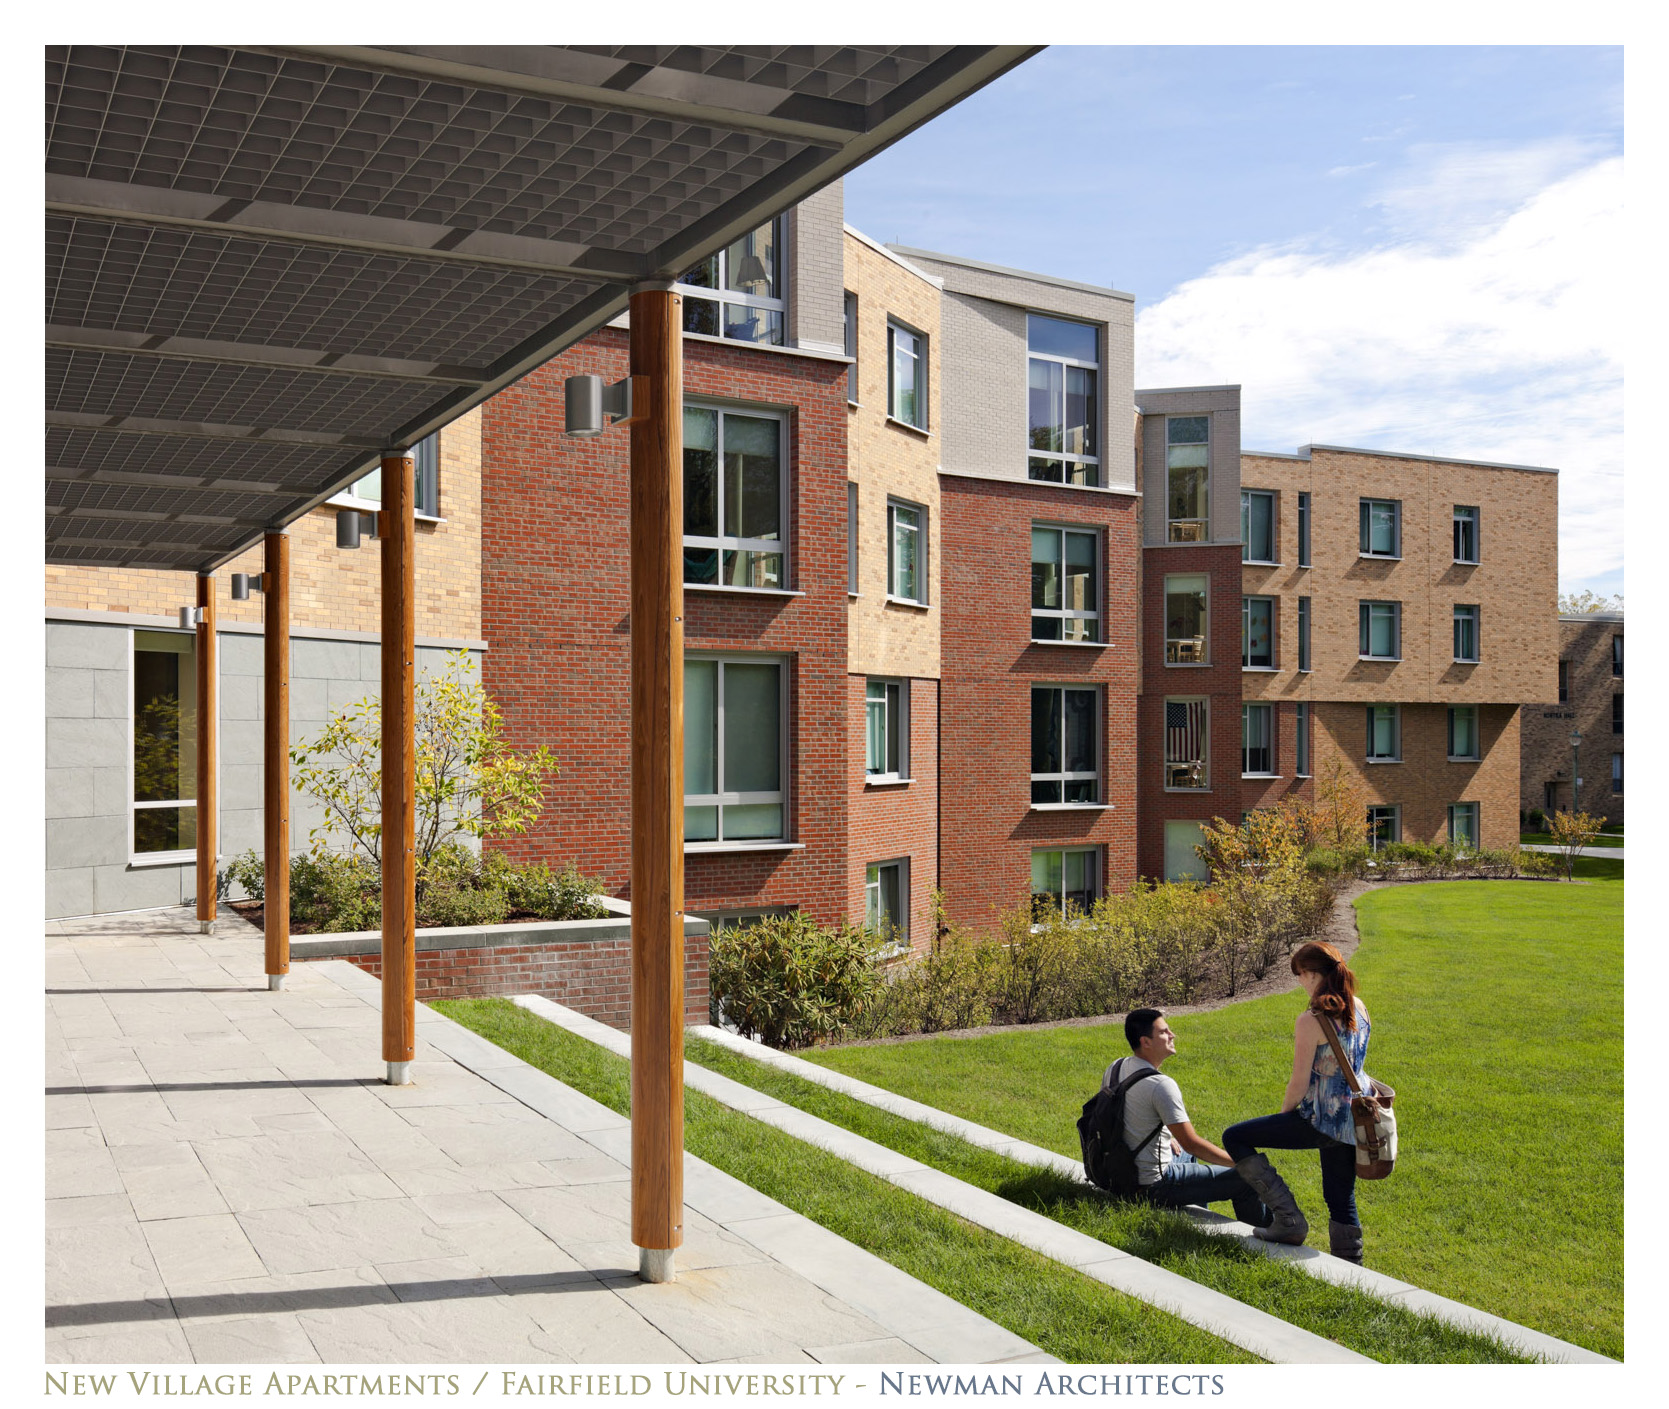 036_Robert-Benson-Photography-Newman-Architects-New-Village-Apartments-Fairfield-University-Student-Housing-Architectural-Photography-09.JPG